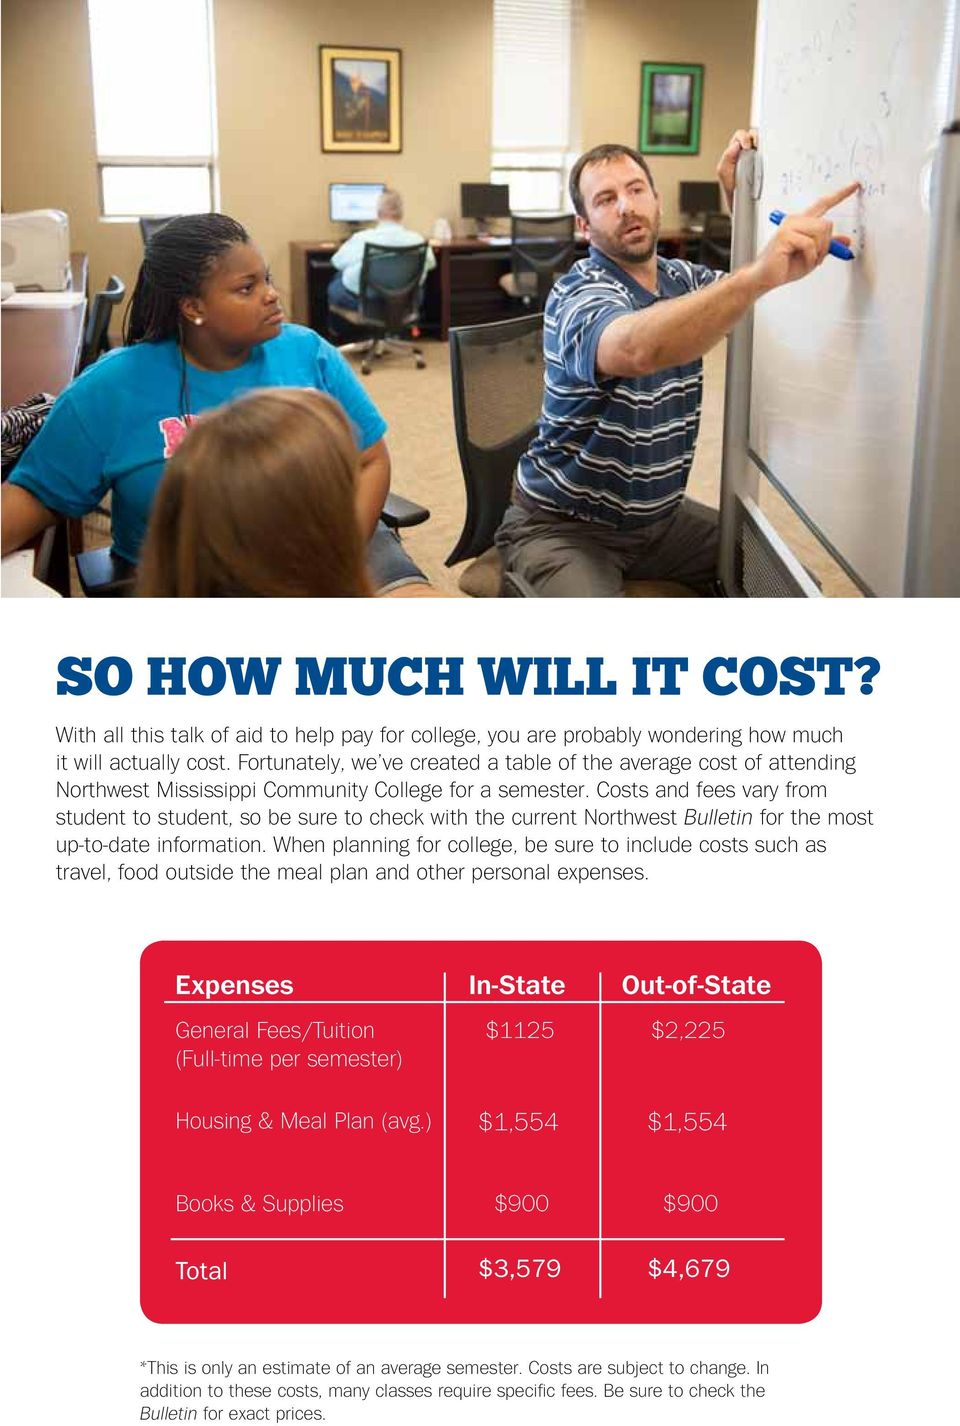 Costs and fees vary from student to student, so be sure to check with the current Northwest Bulletin for the most up-to-date information.